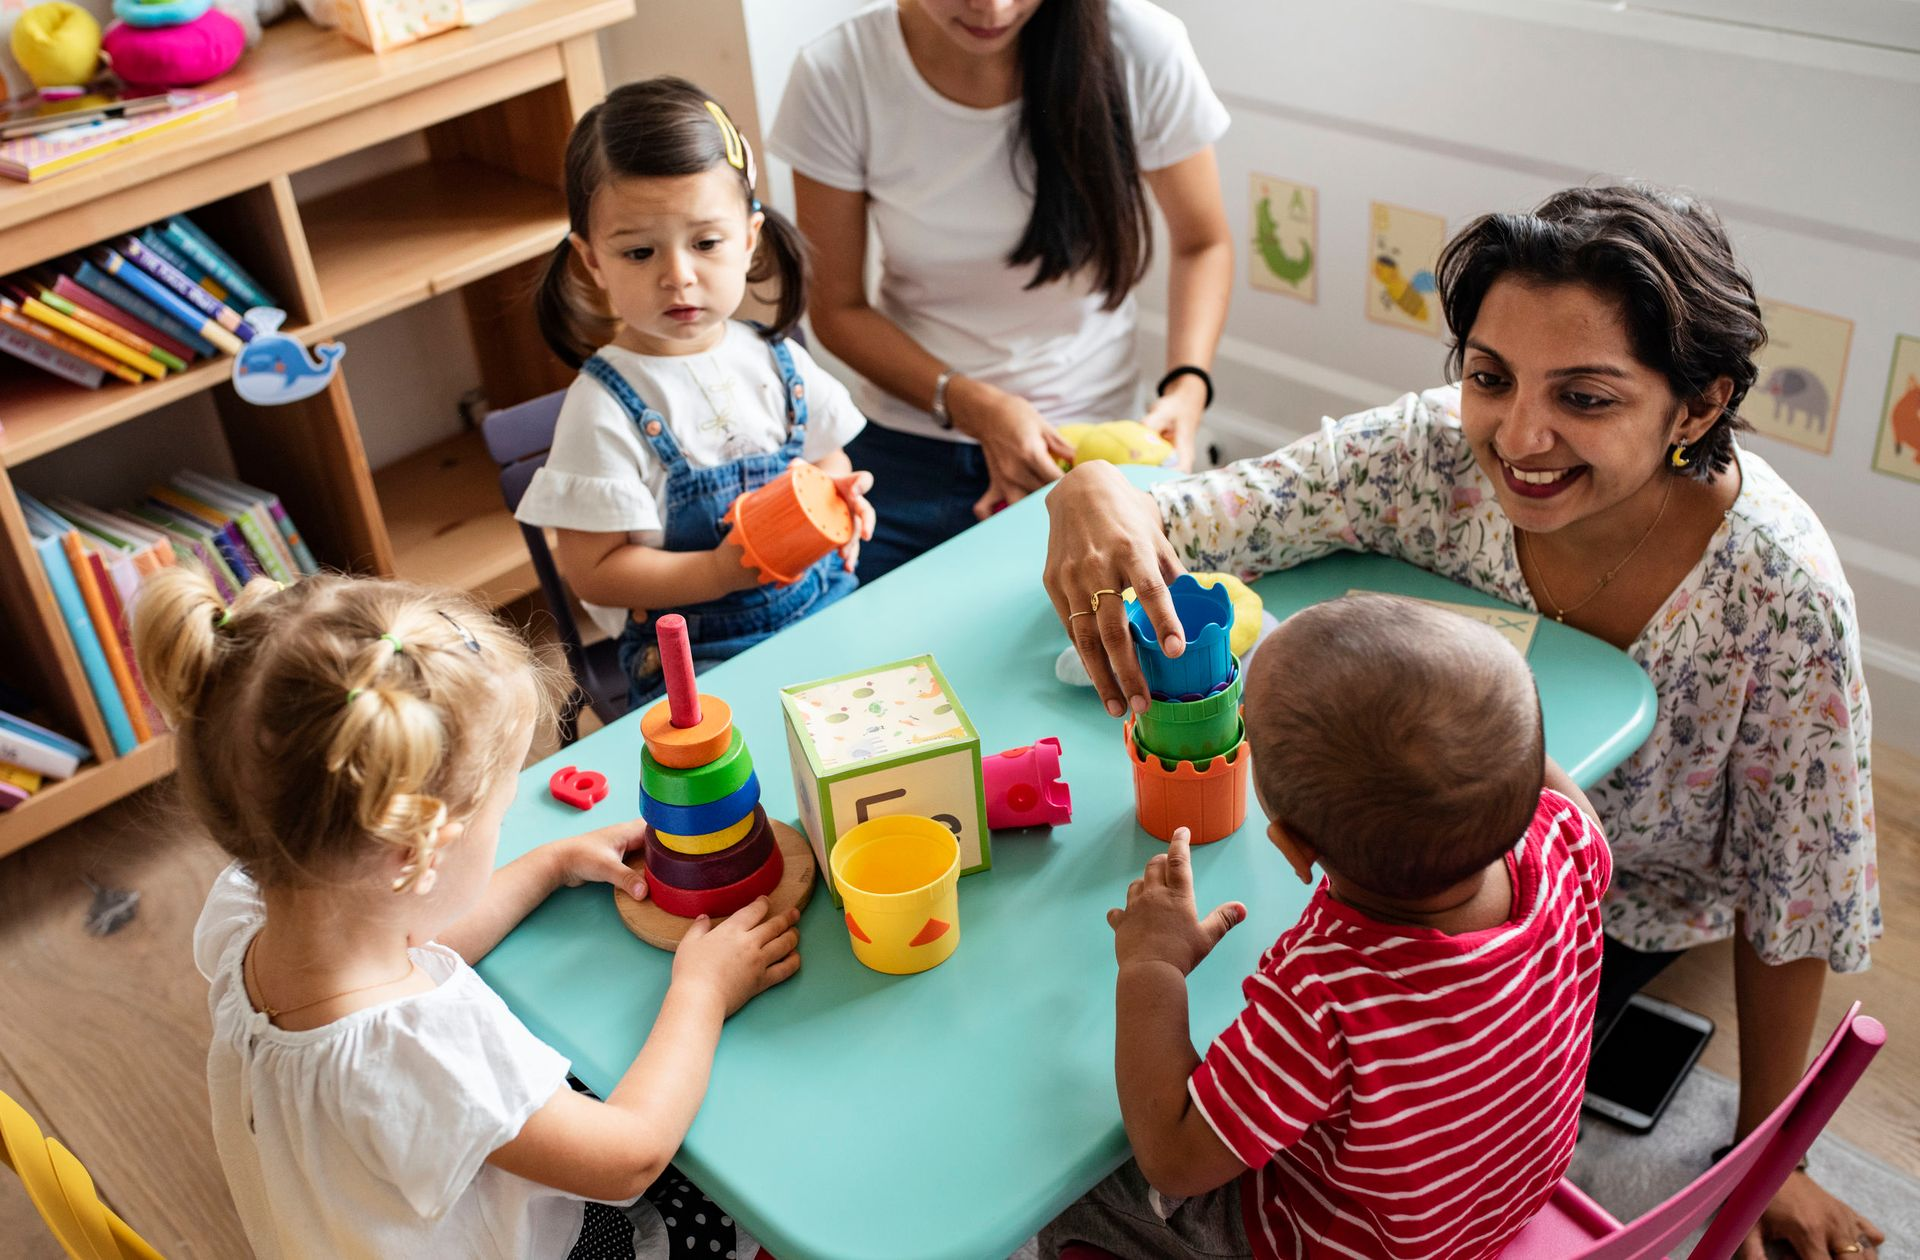 Comment: It's about time childcare centres start matching parents' working hours